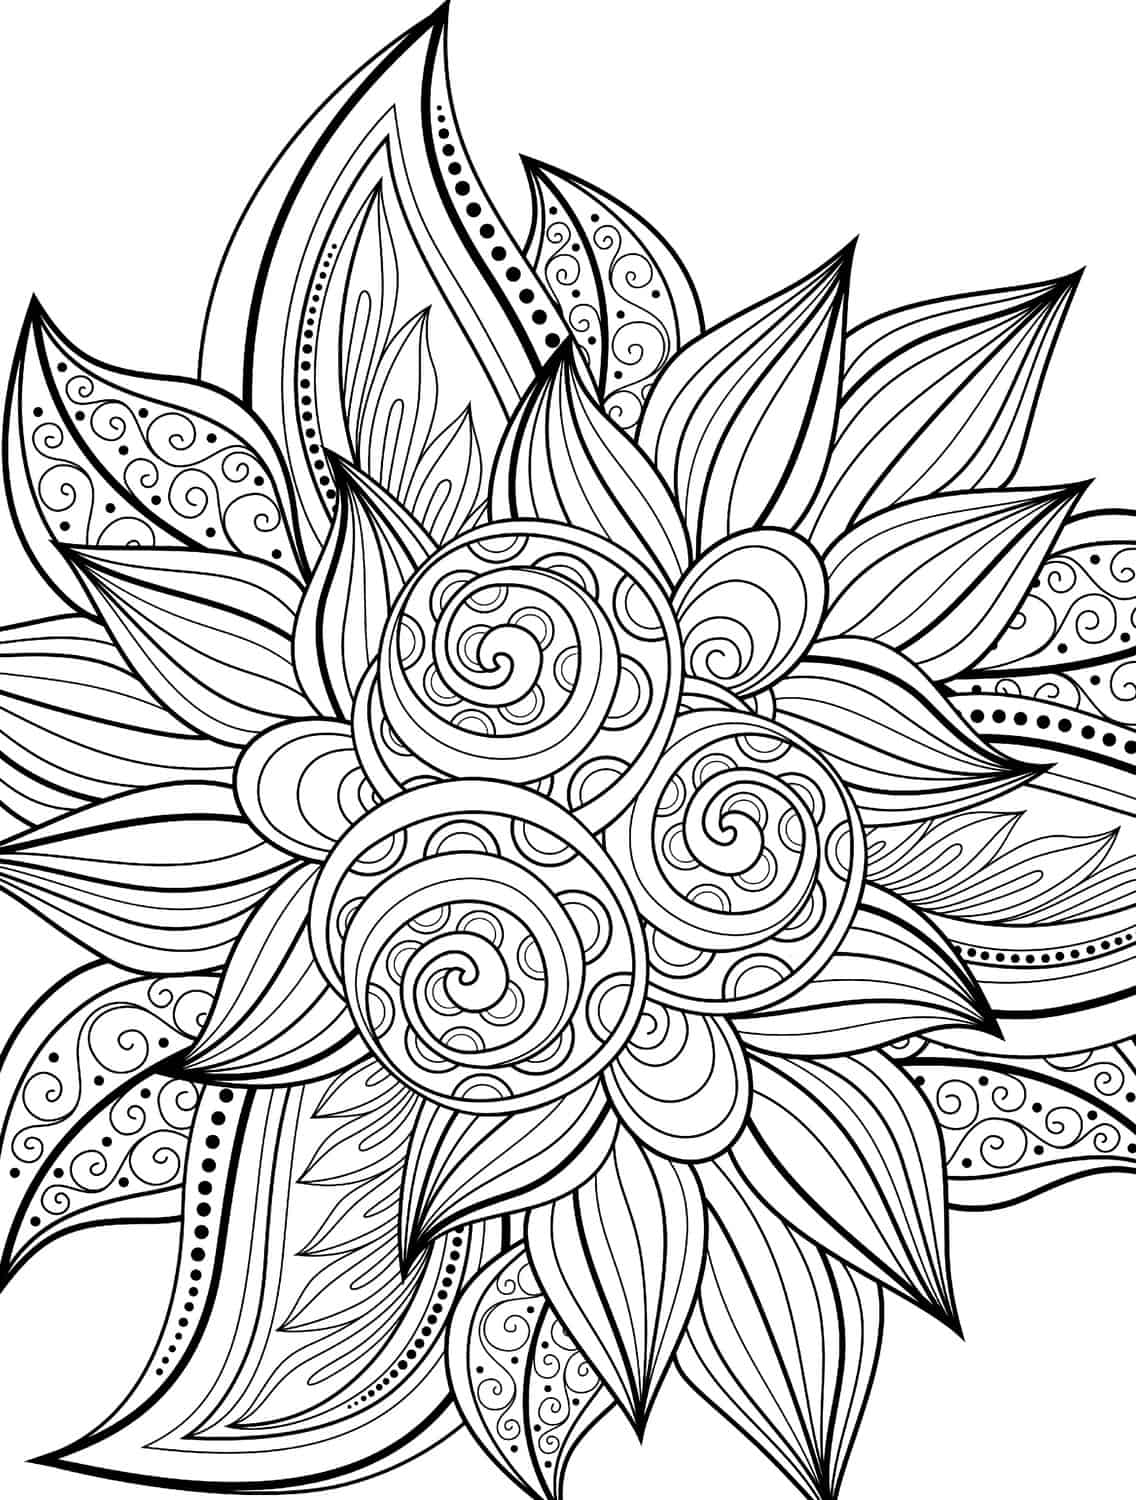 10 Free Printable Holiday Adult Coloring Pages Coloring Book For Adults Free